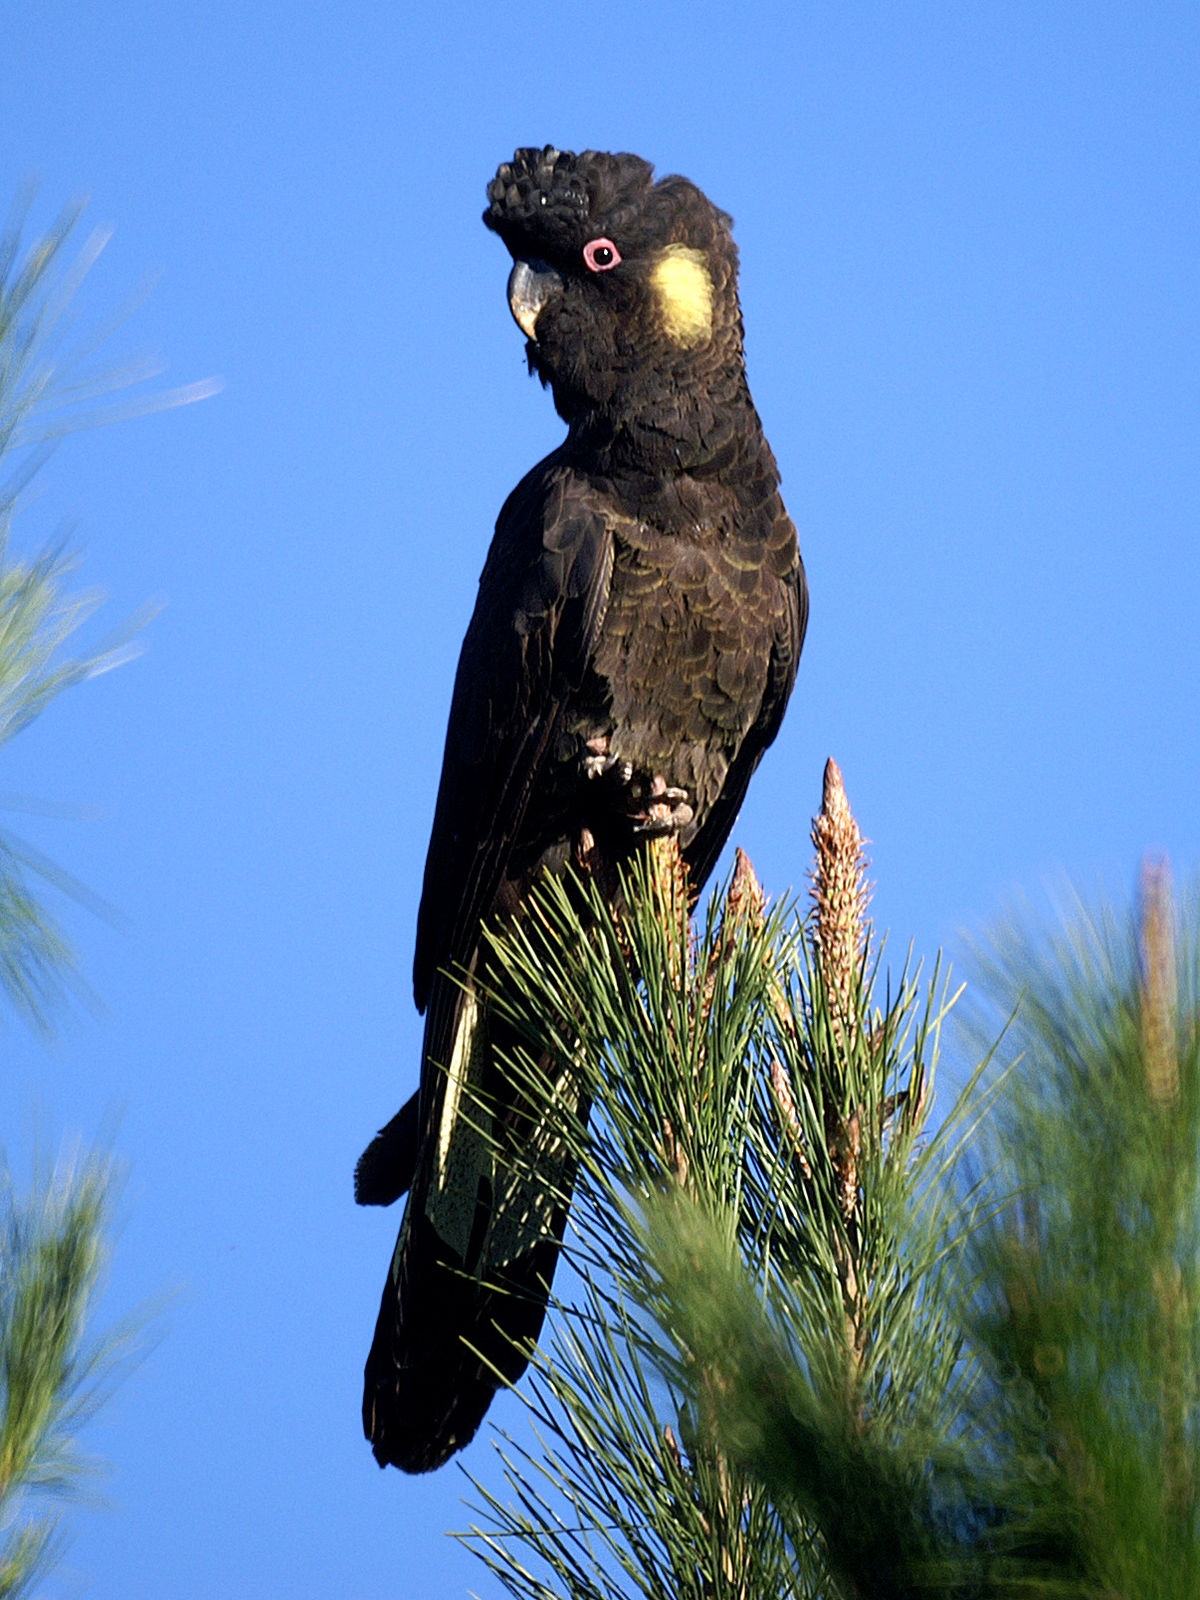 yellow-tailed-black-cockatoo-01.jpg